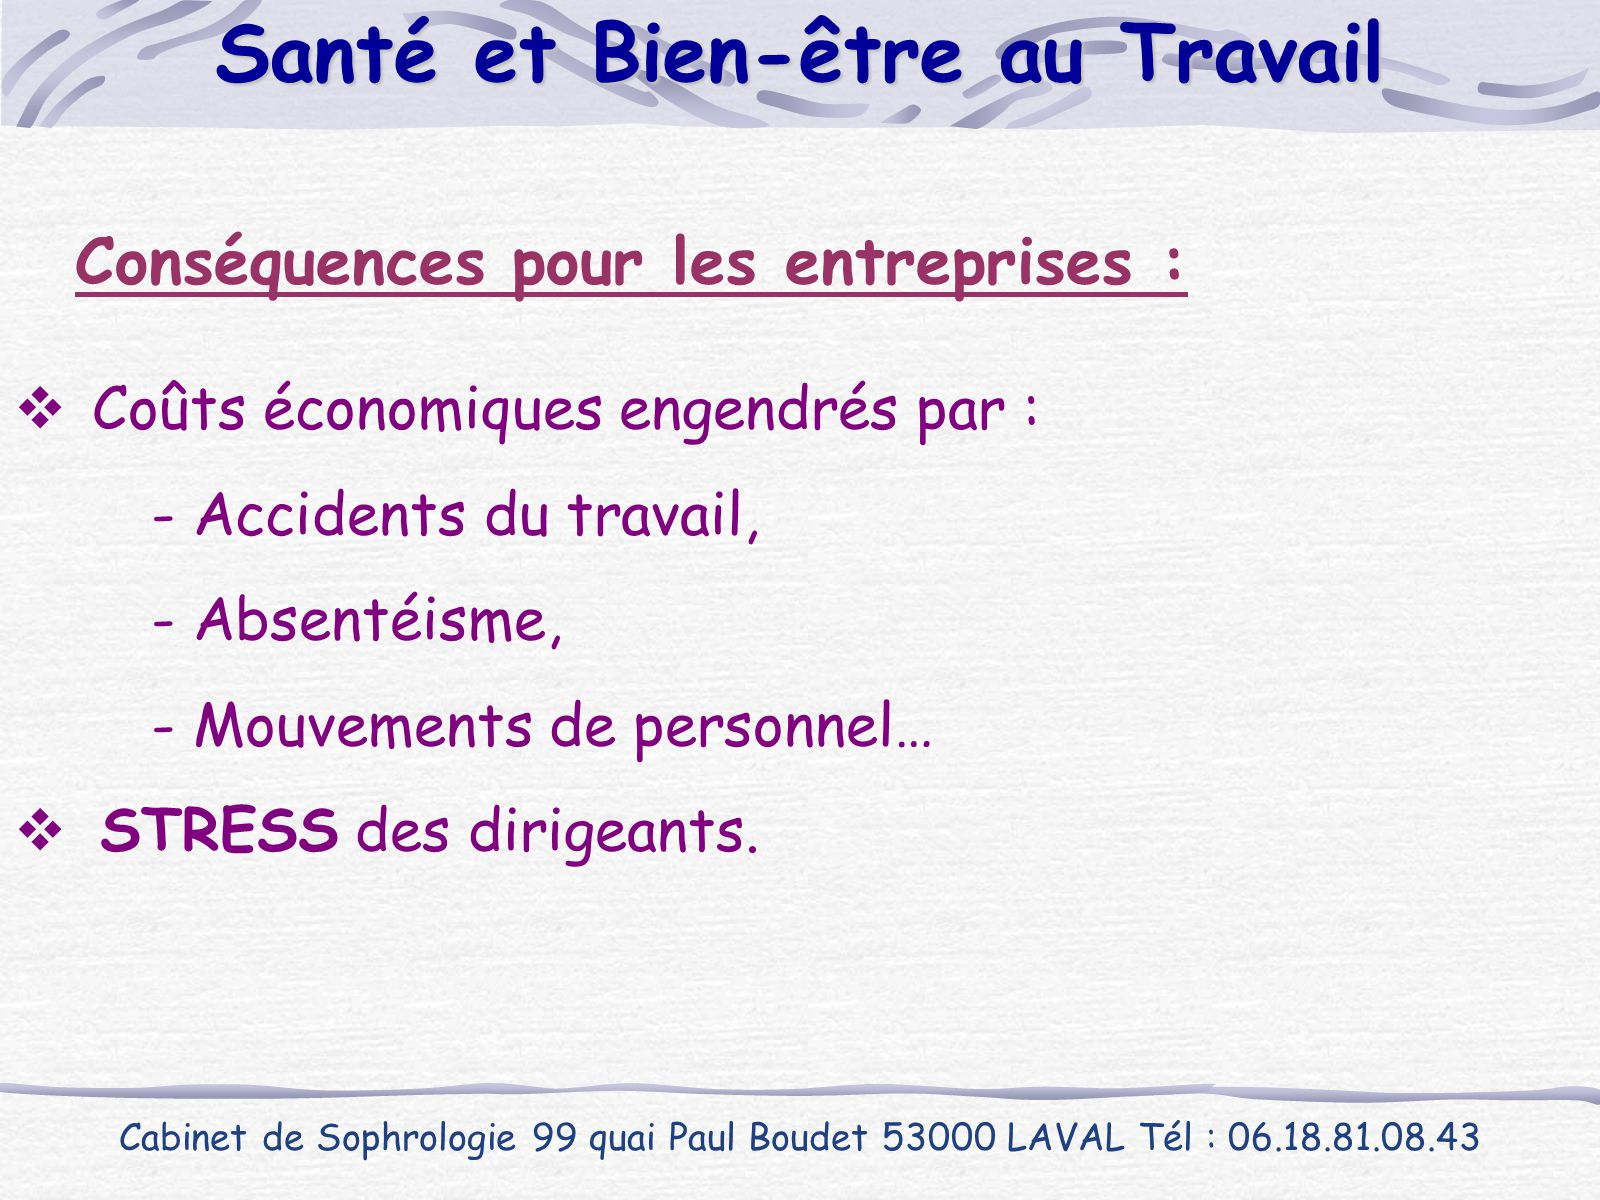 Conséquences pour les entreprises :  Coûts économiques engendrés par : - Accidents du travail, - Absentéisme, - Mouvements de personnel…  STRESS des